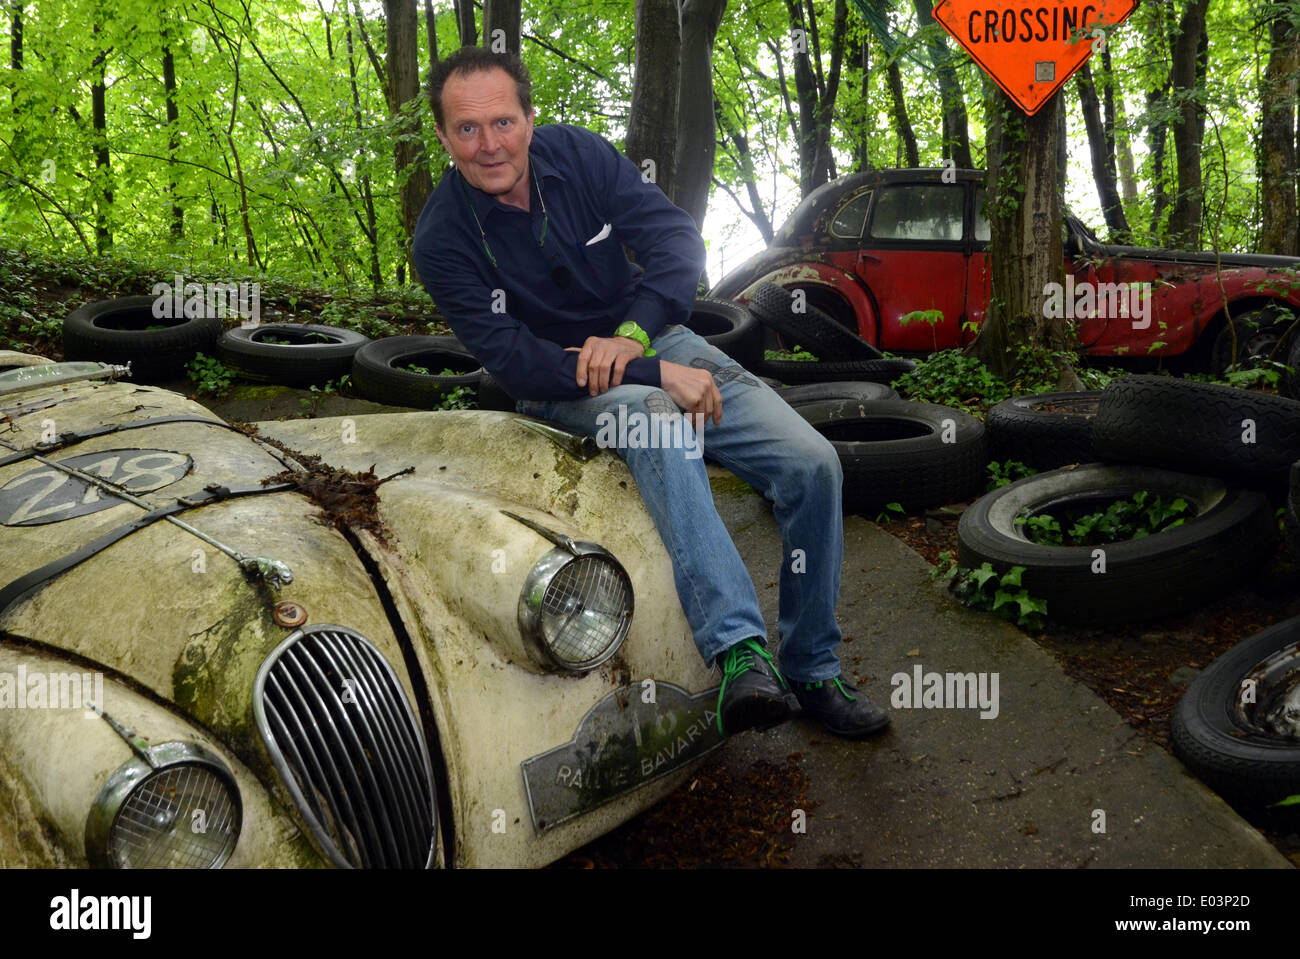 mettmann germany 27th apr 2014 classic car specialist michael stock photo royalty free. Black Bedroom Furniture Sets. Home Design Ideas